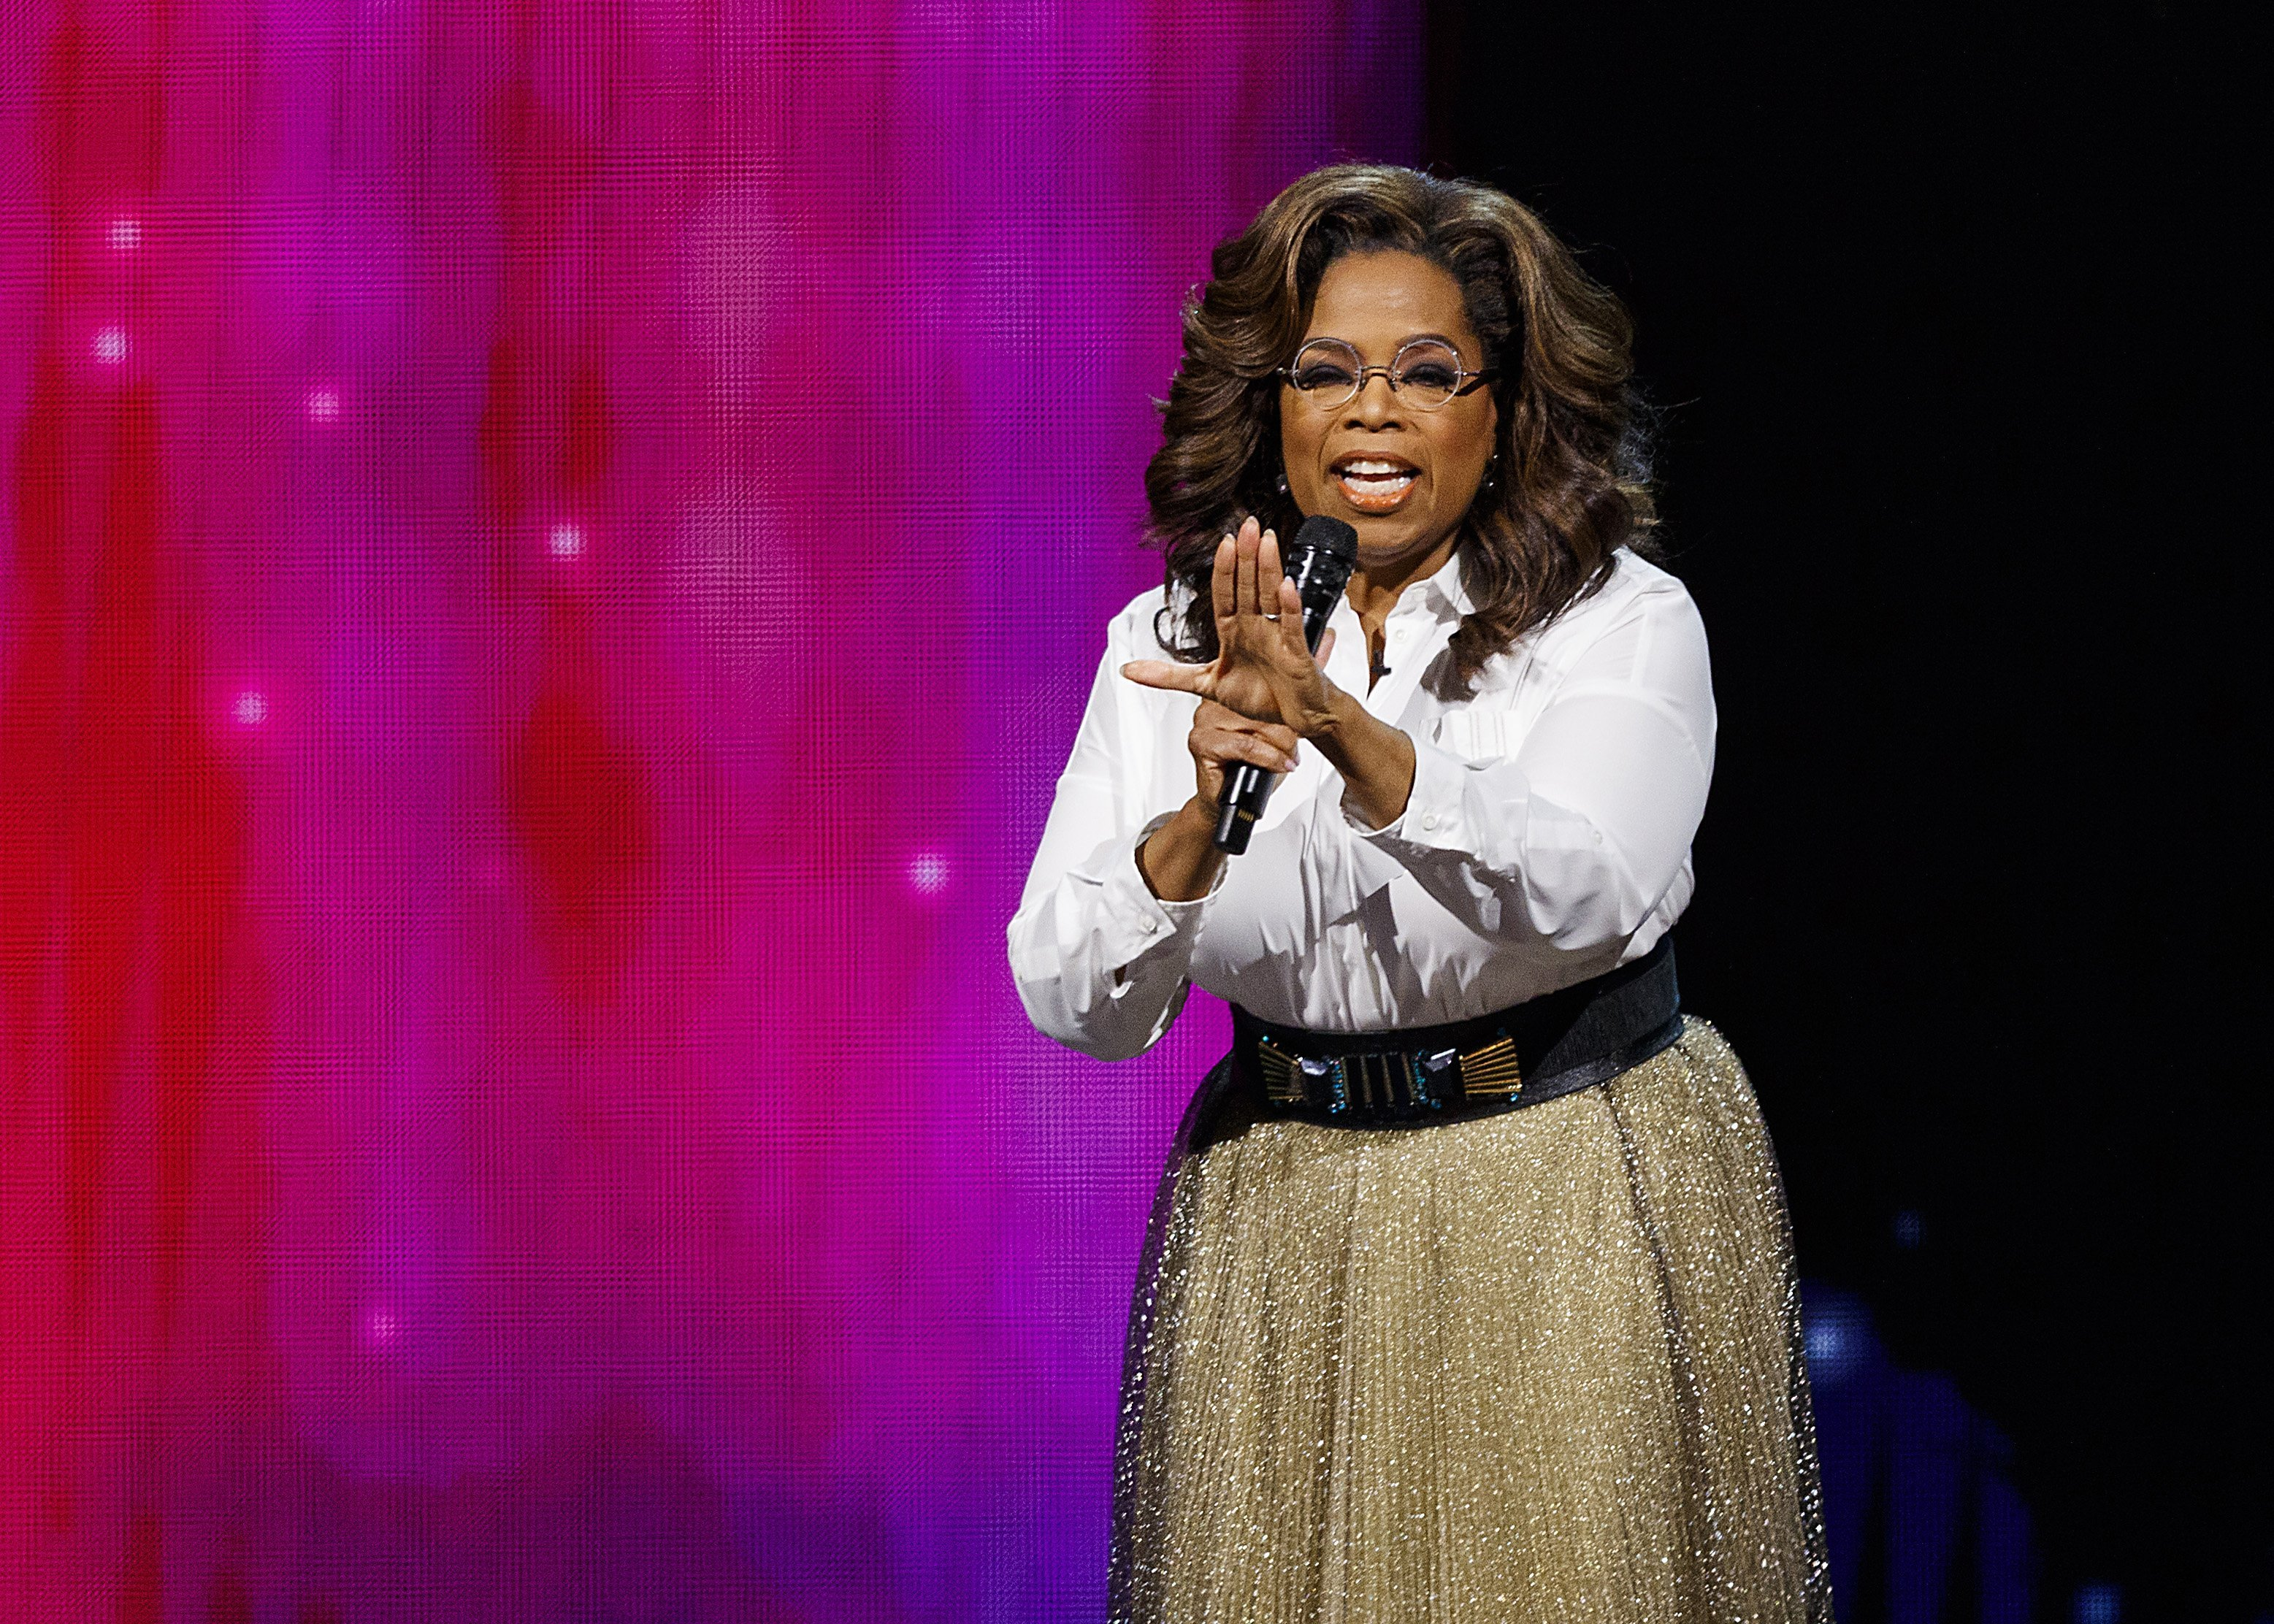 Oprah Winfrey speaks on stage at Rogers Arena on June 24, 2019, in Vancouver, Canada. | Source: Getty Images.